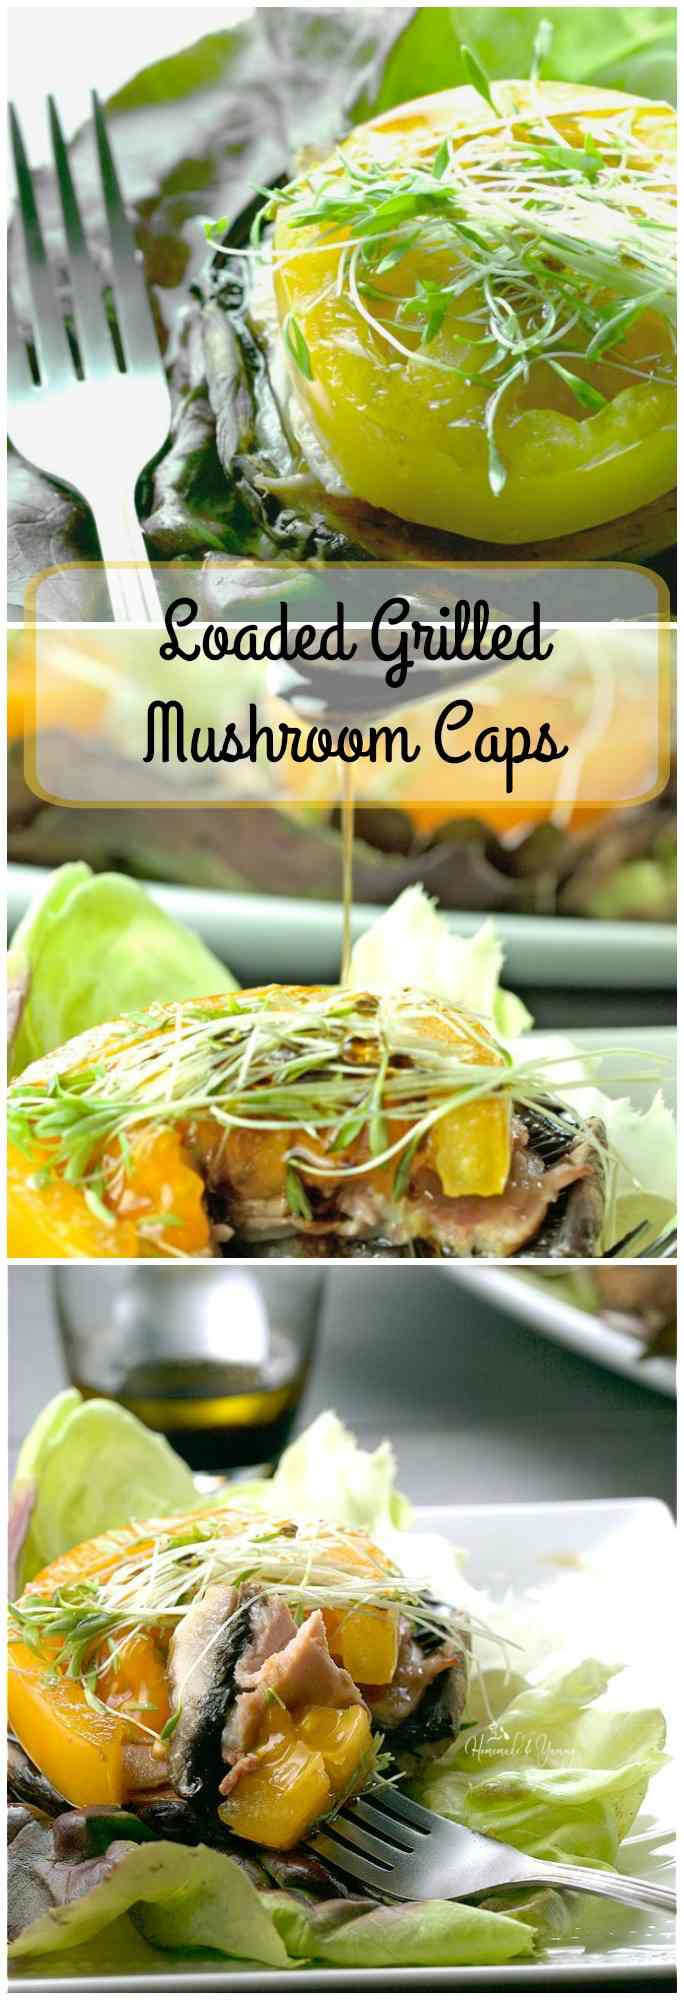 Loaded Grilled Mushroom Caps with Bacon Maple Dressing make a great starter, or perfect for a light meal. | homemadeandyummy.com